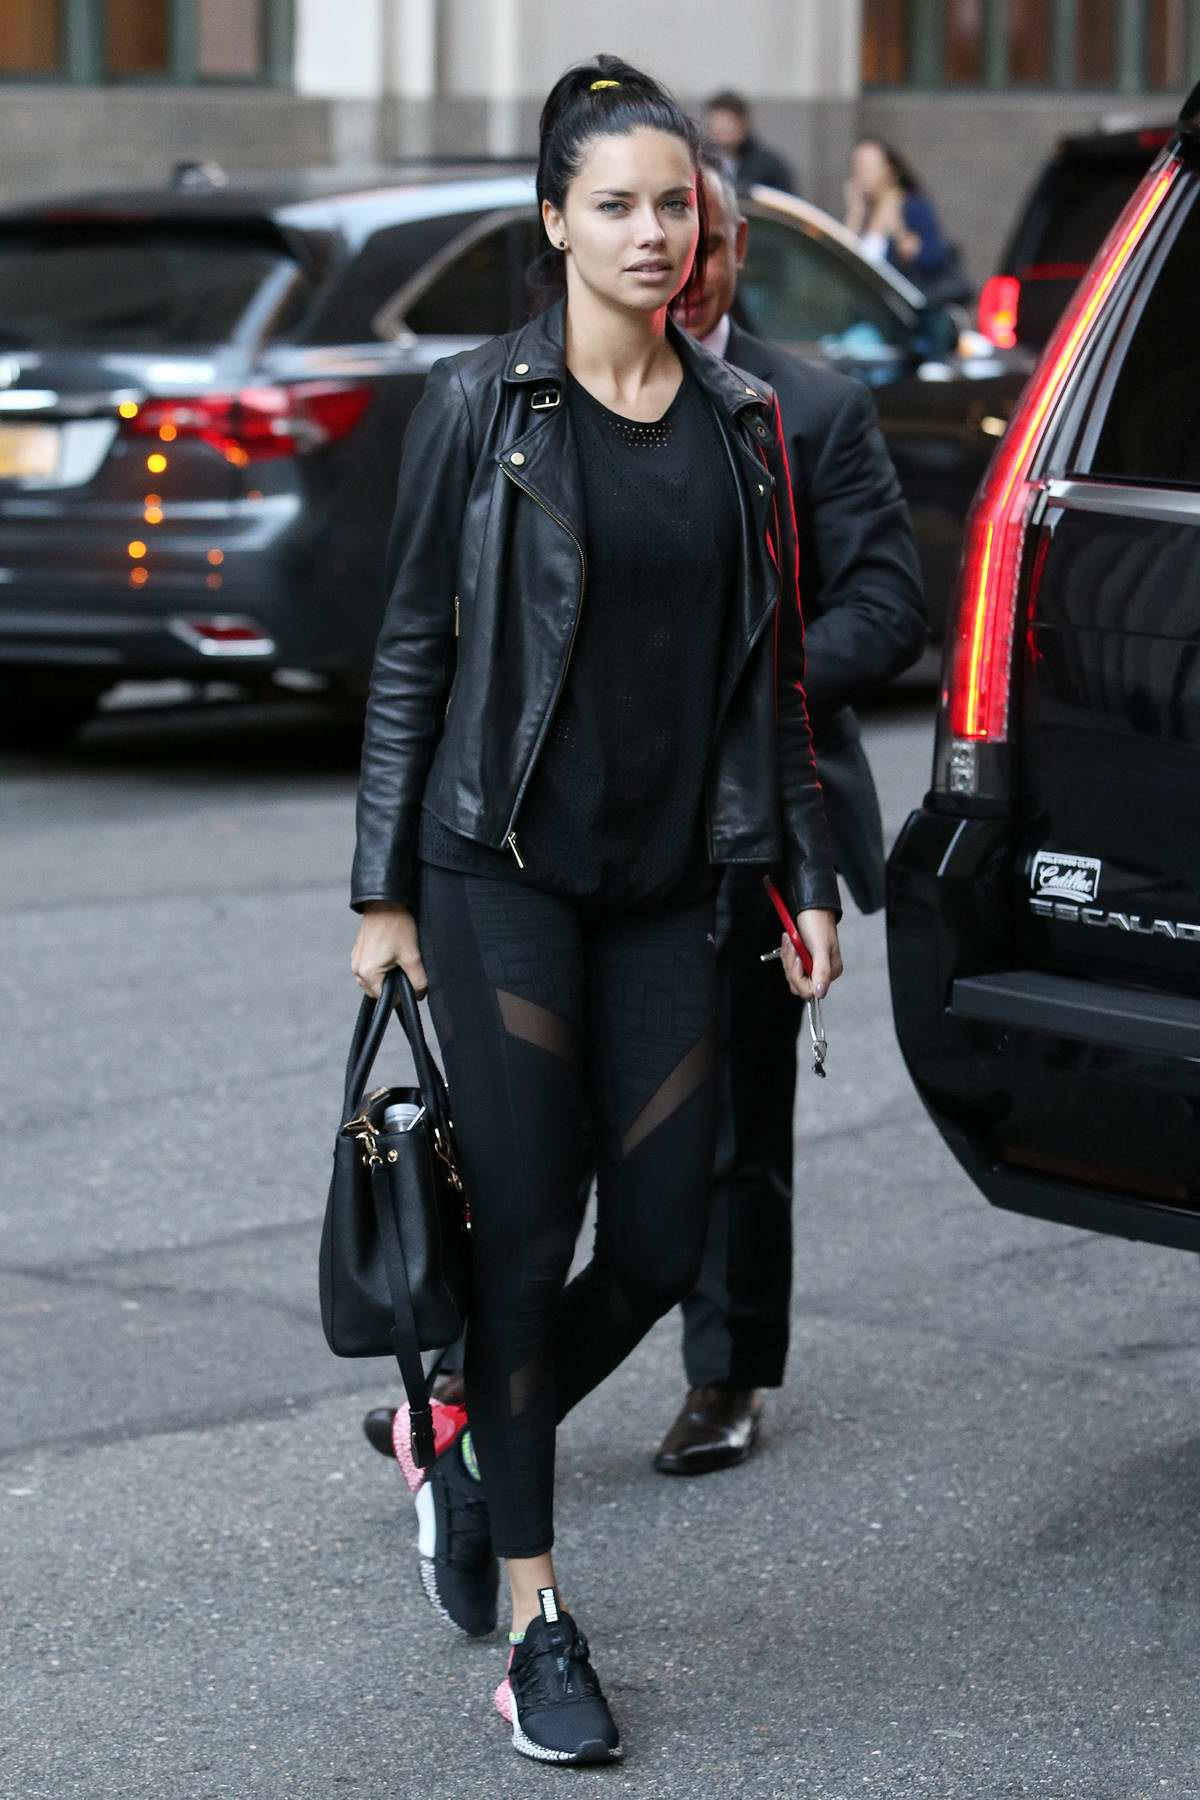 Adriana Lima rocks a black leather jacket to match her Puma gym wear as she arrives back to her hotel after workout , New York City